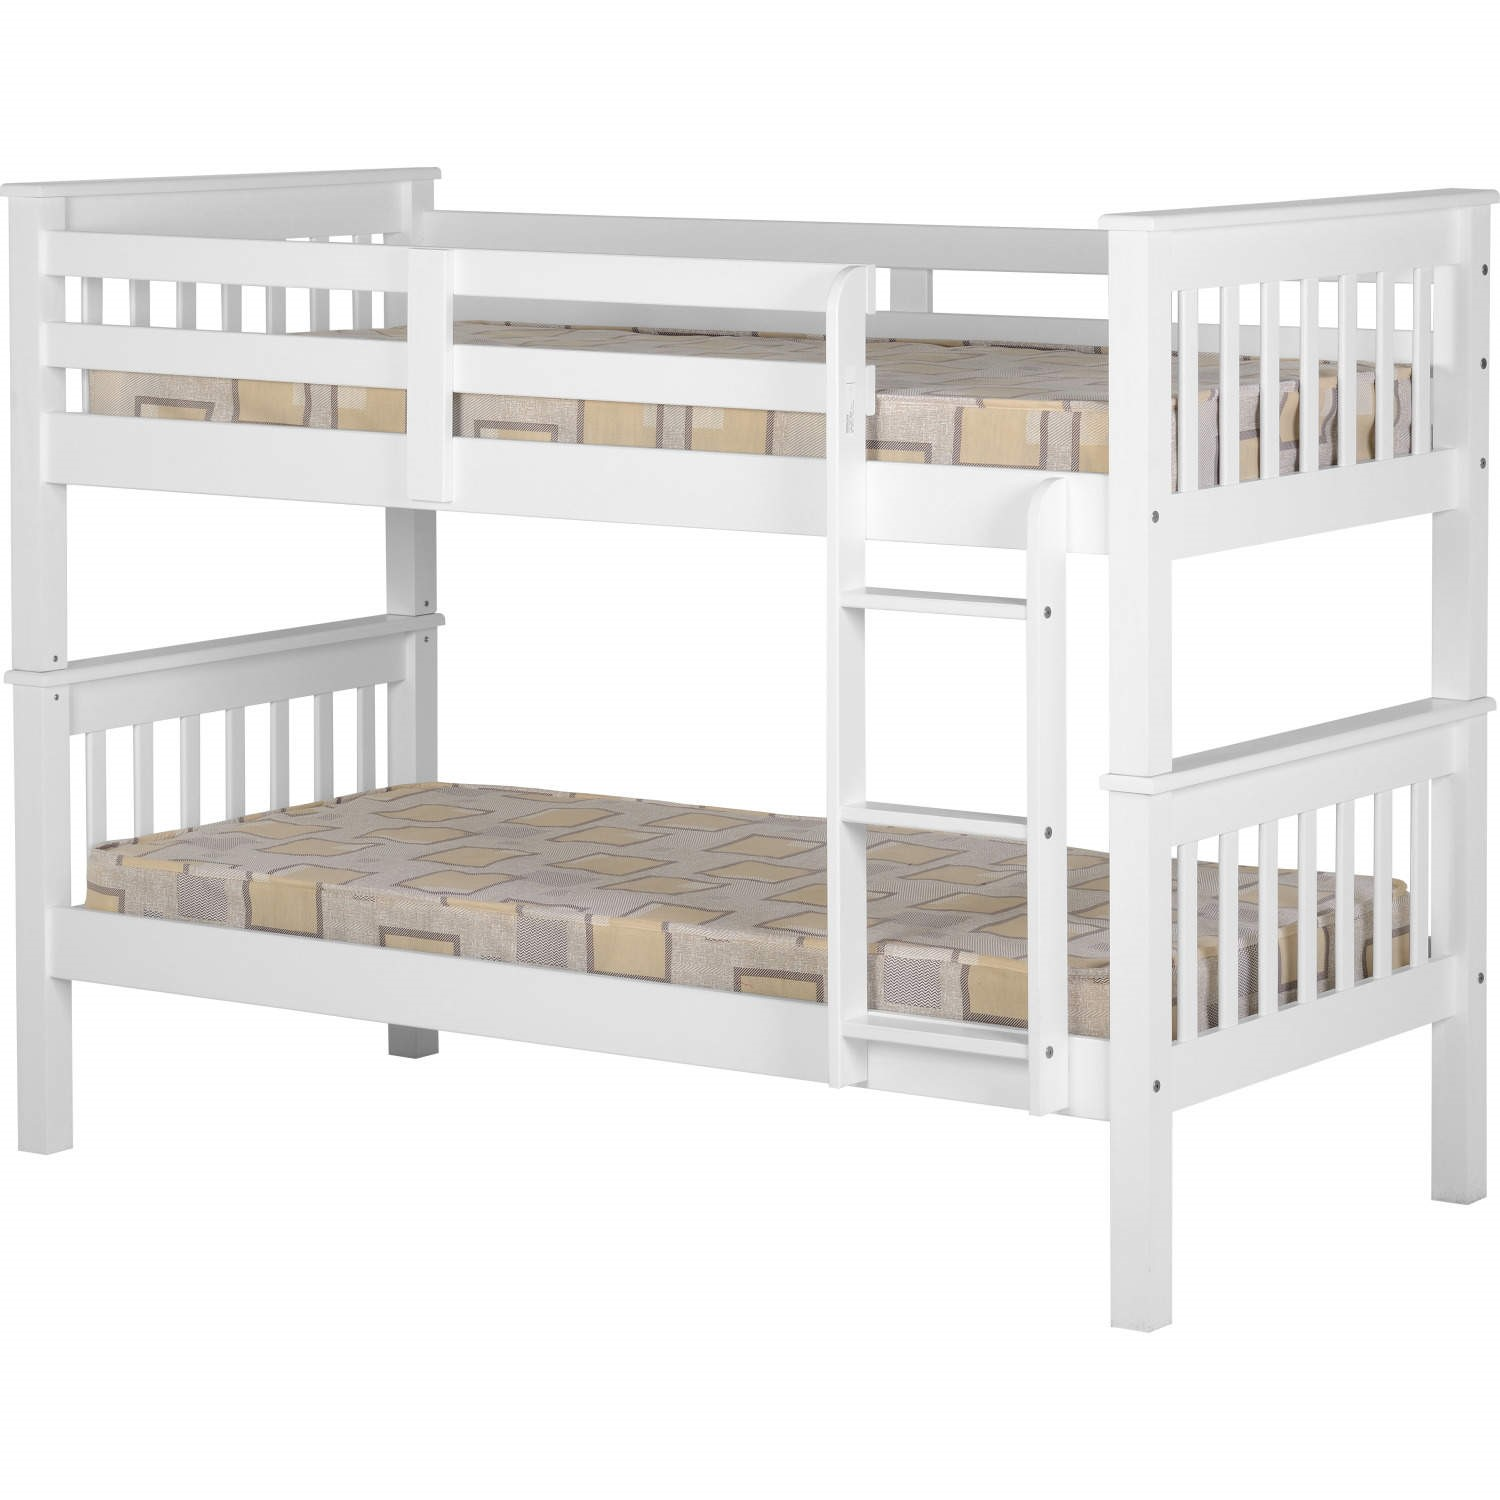 Seconique Neptune Bunk Bed In White Bed Frame Only Furniture123